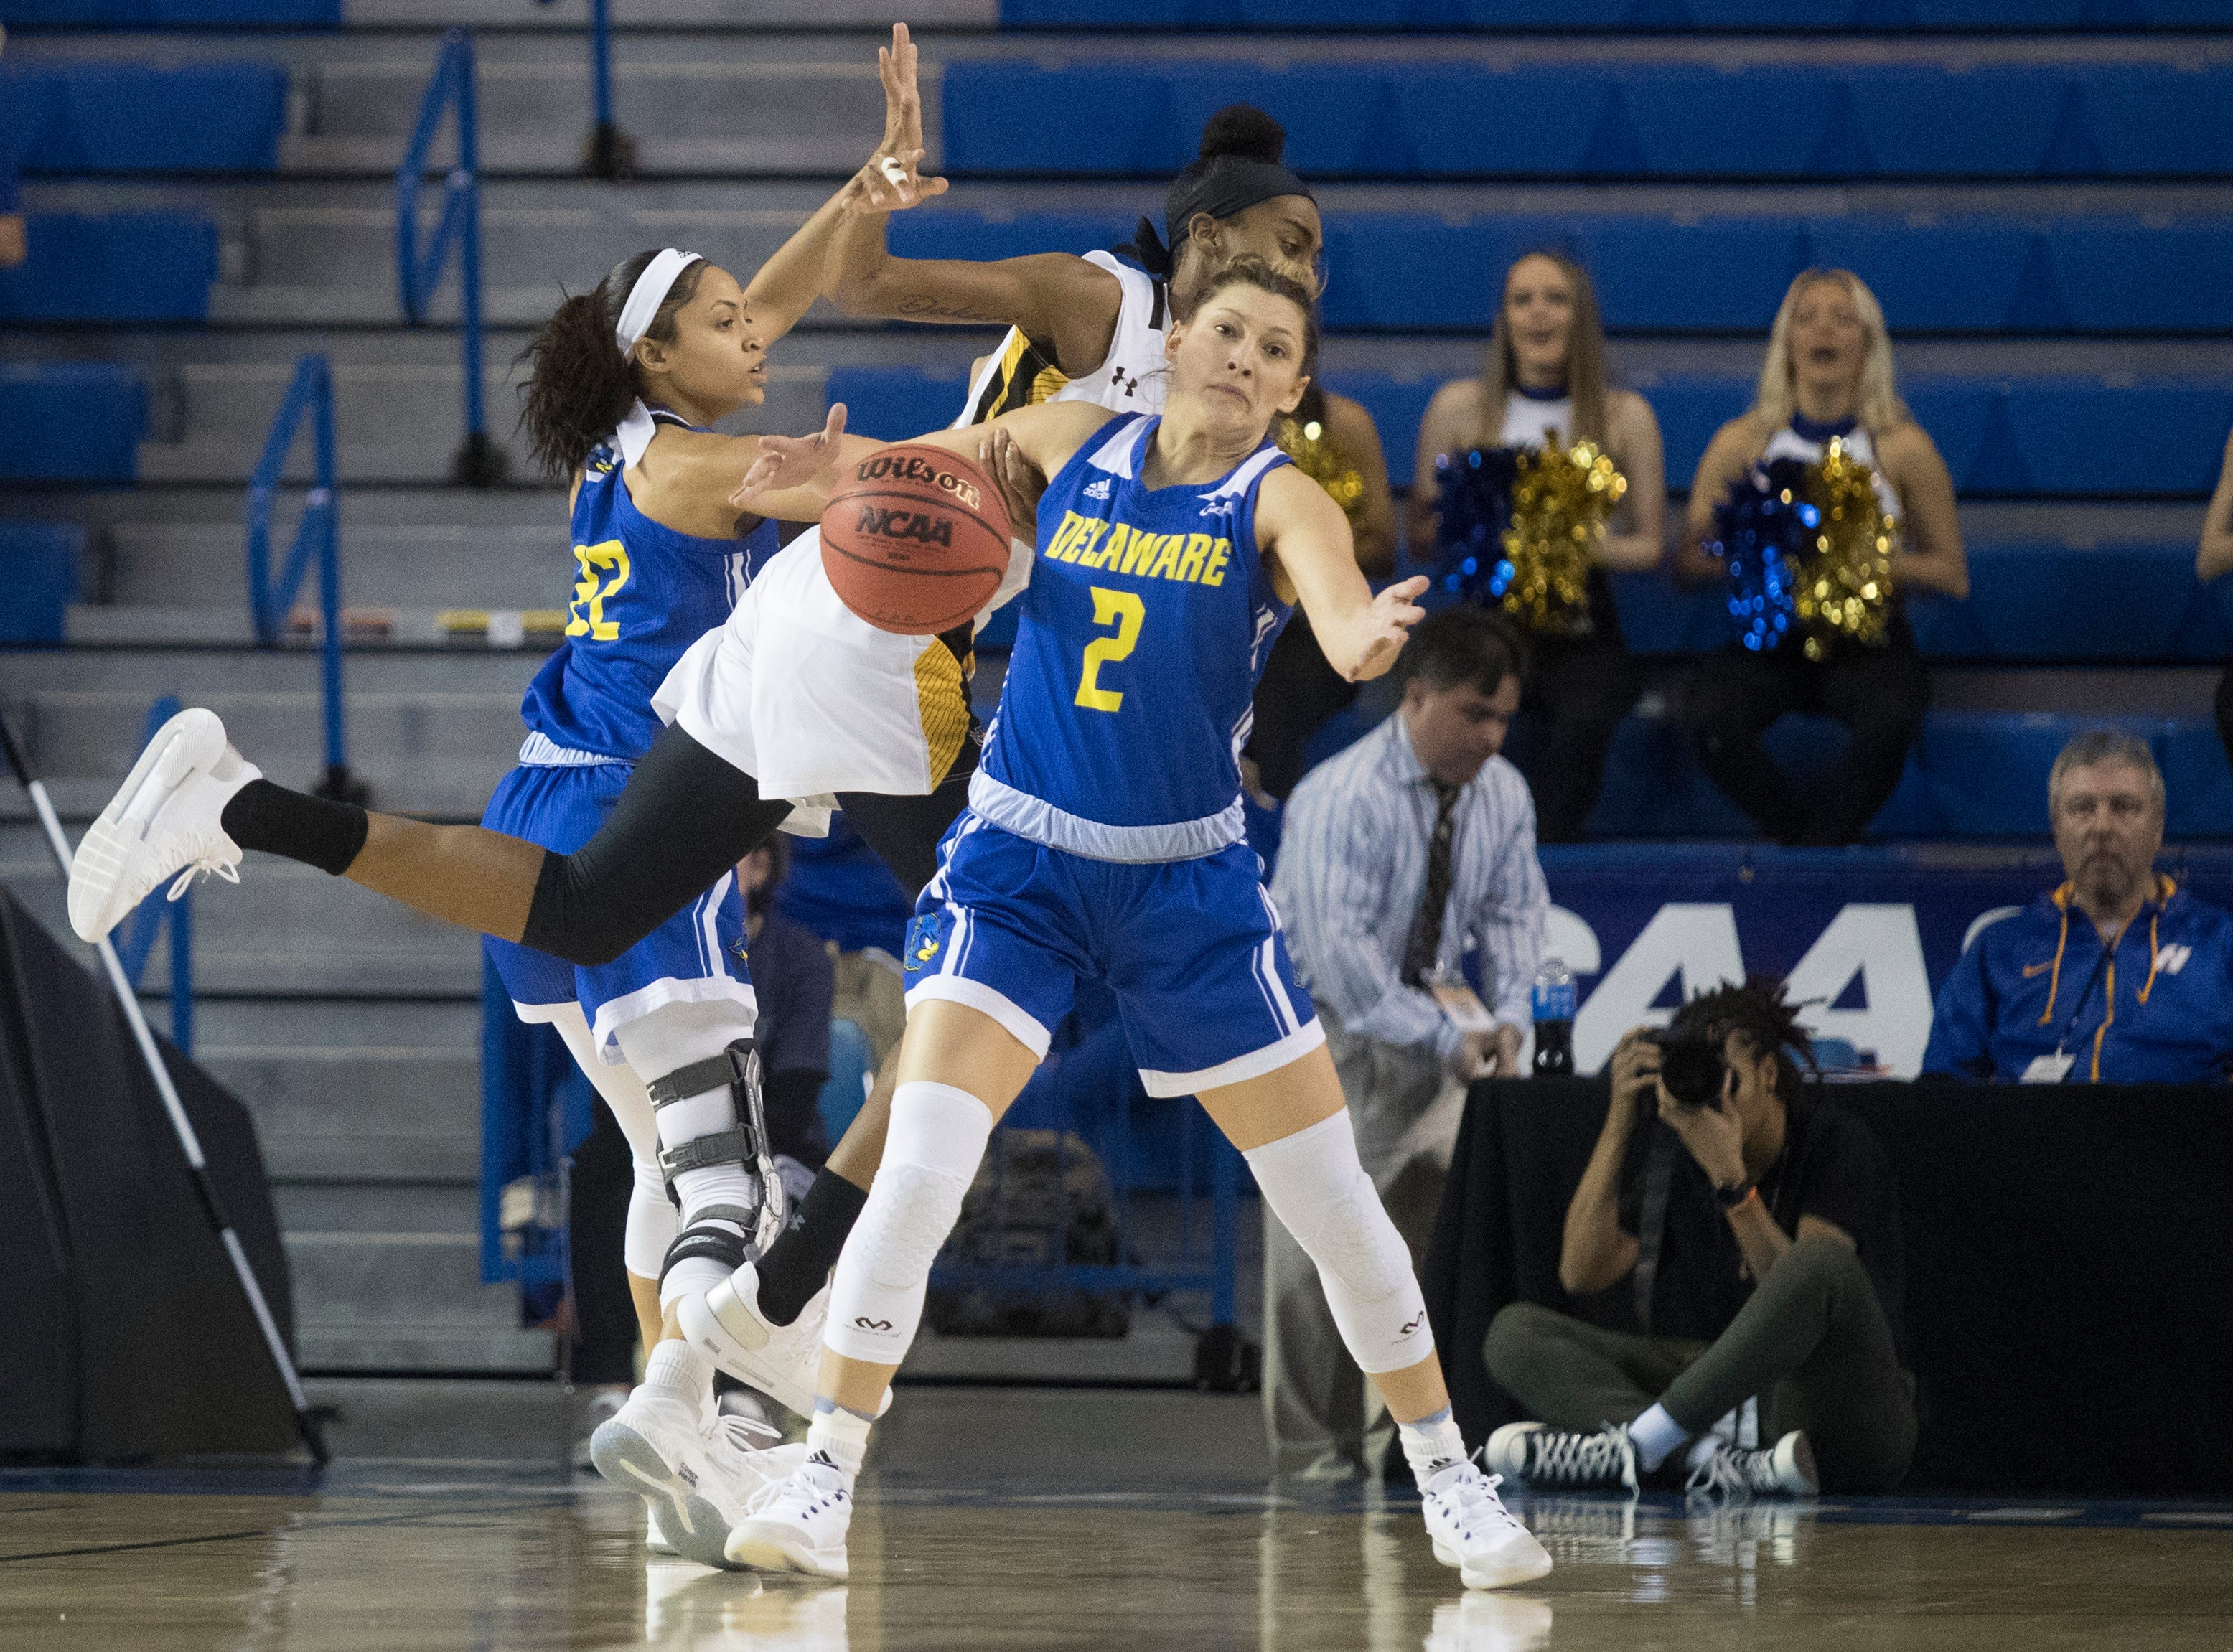 Delaware's Samone DeFreese (22) and Abby Gonzales (2) struggle to gain possession Thursday night against Towson in the CAA quarterfinals. Towson defeated Delaware 59-49.